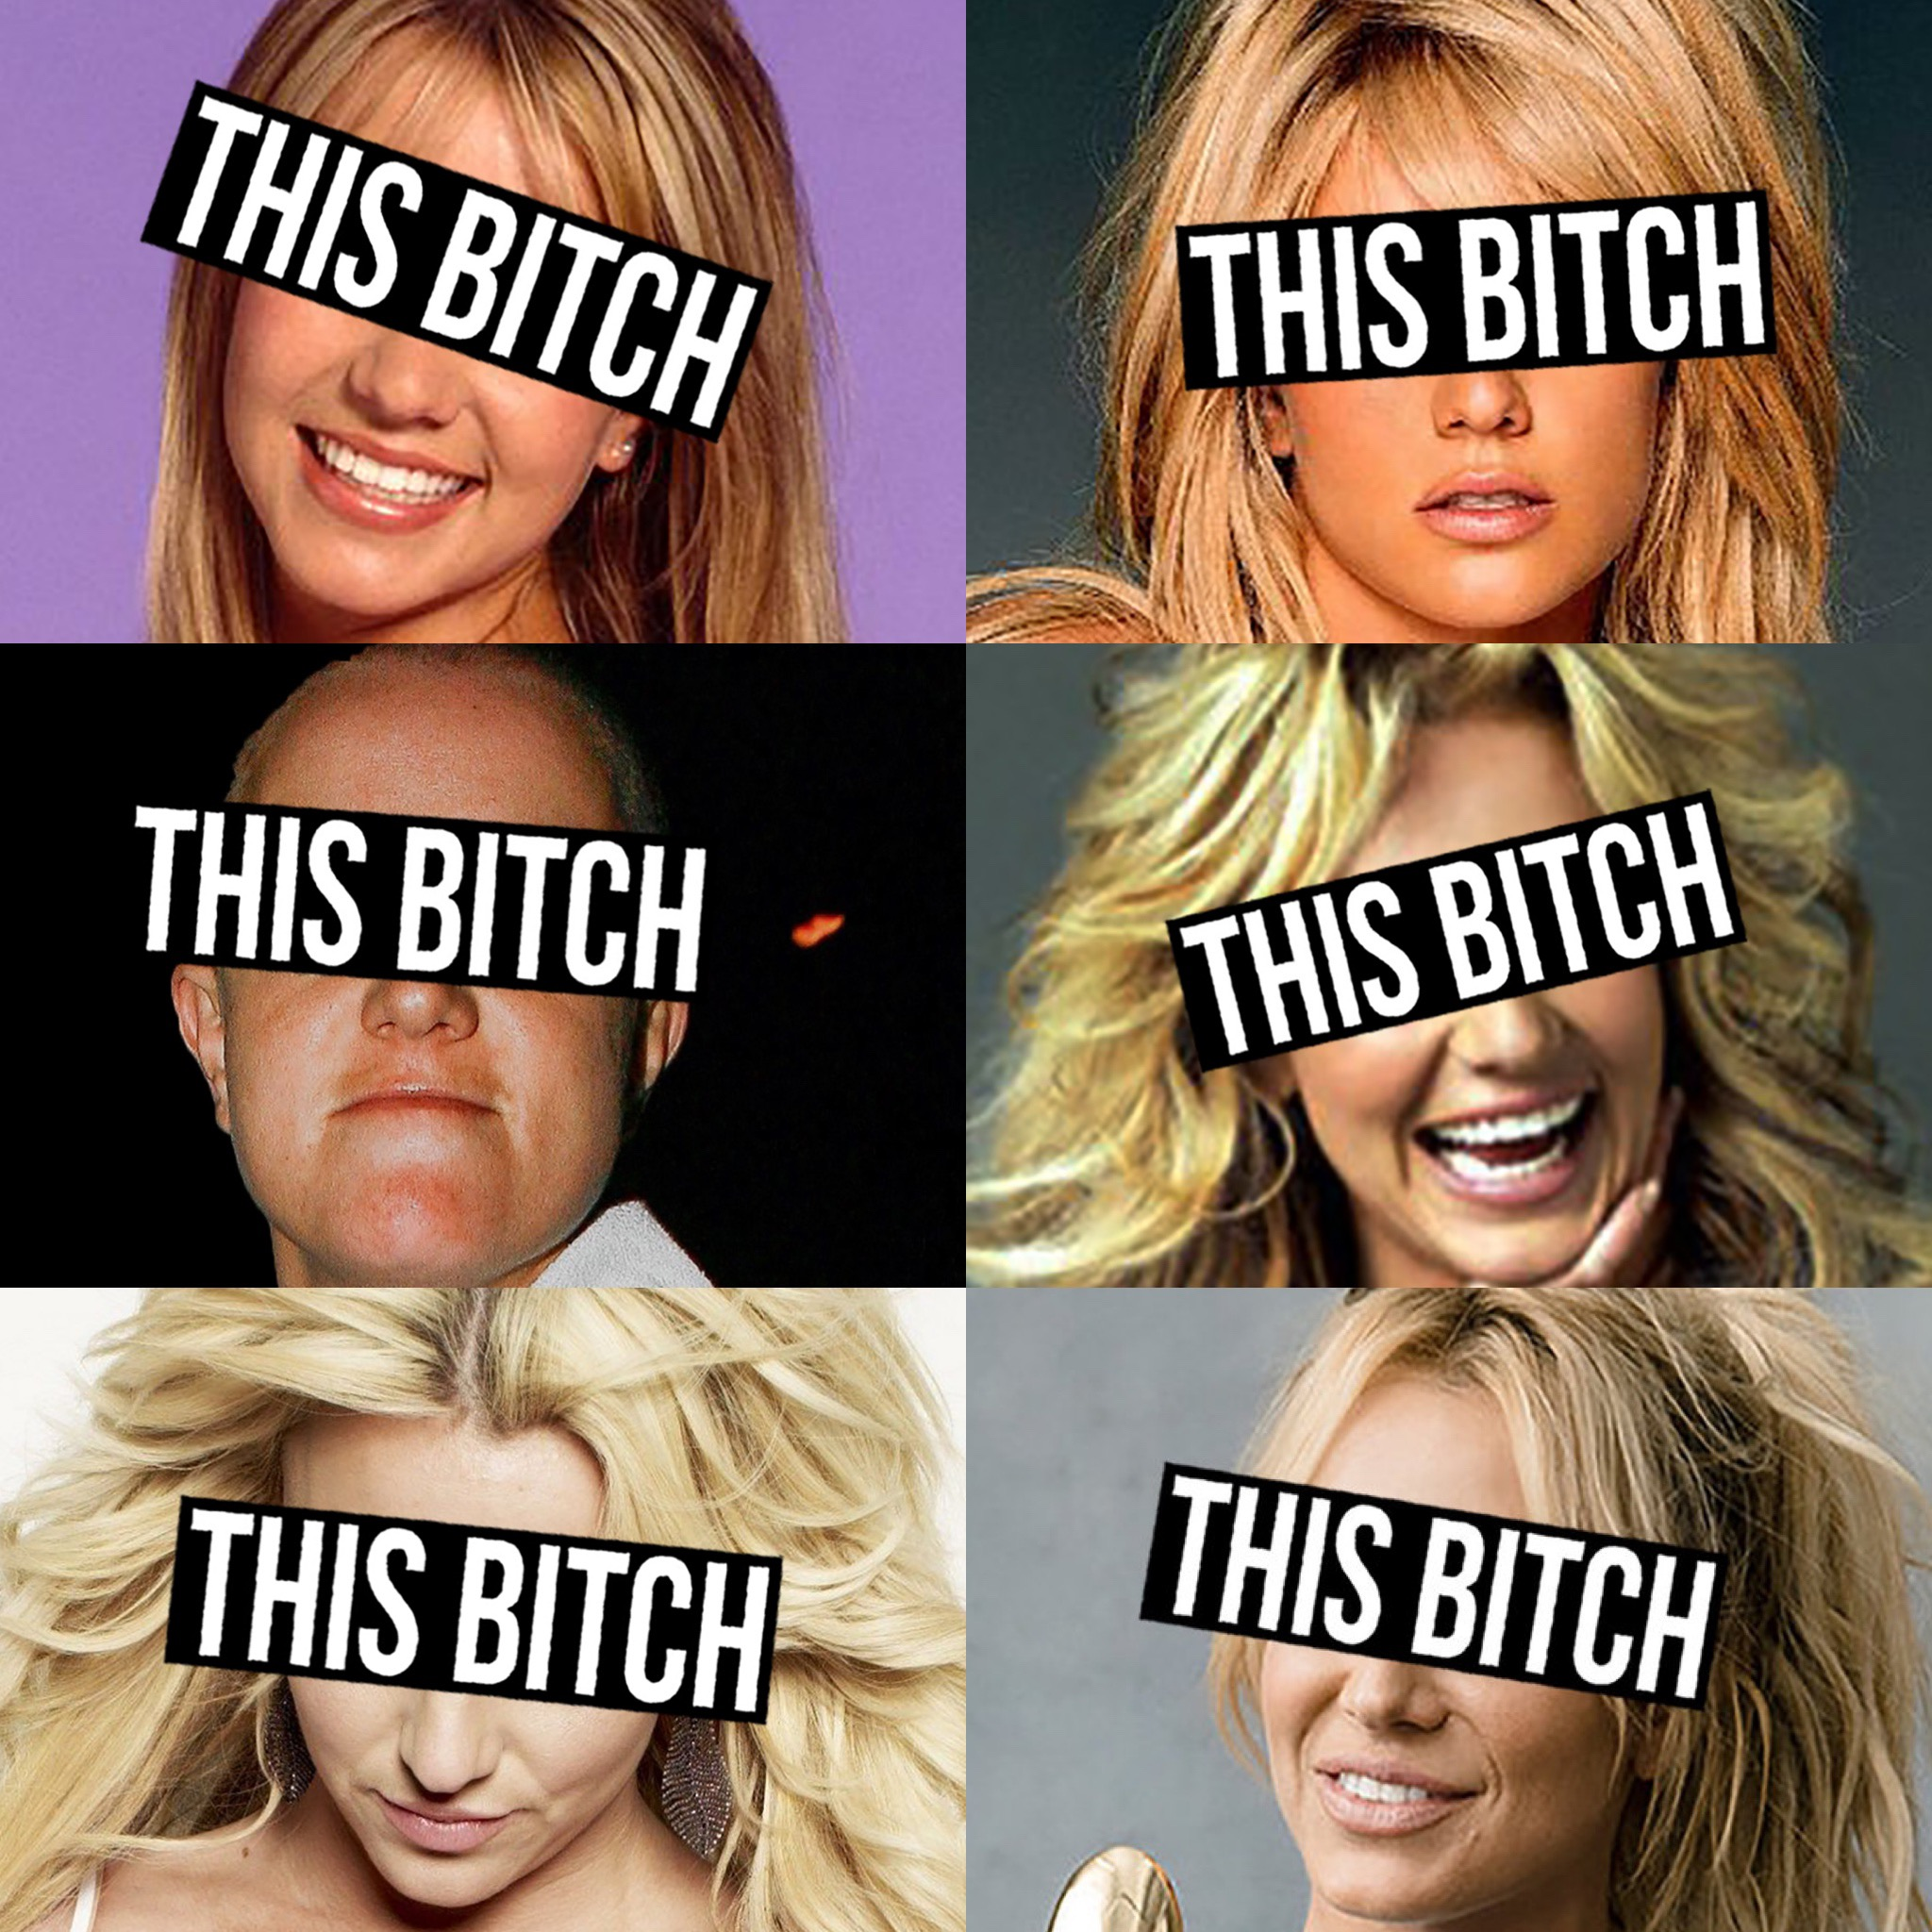 THIS BITCH: BRITNEY SPEARS